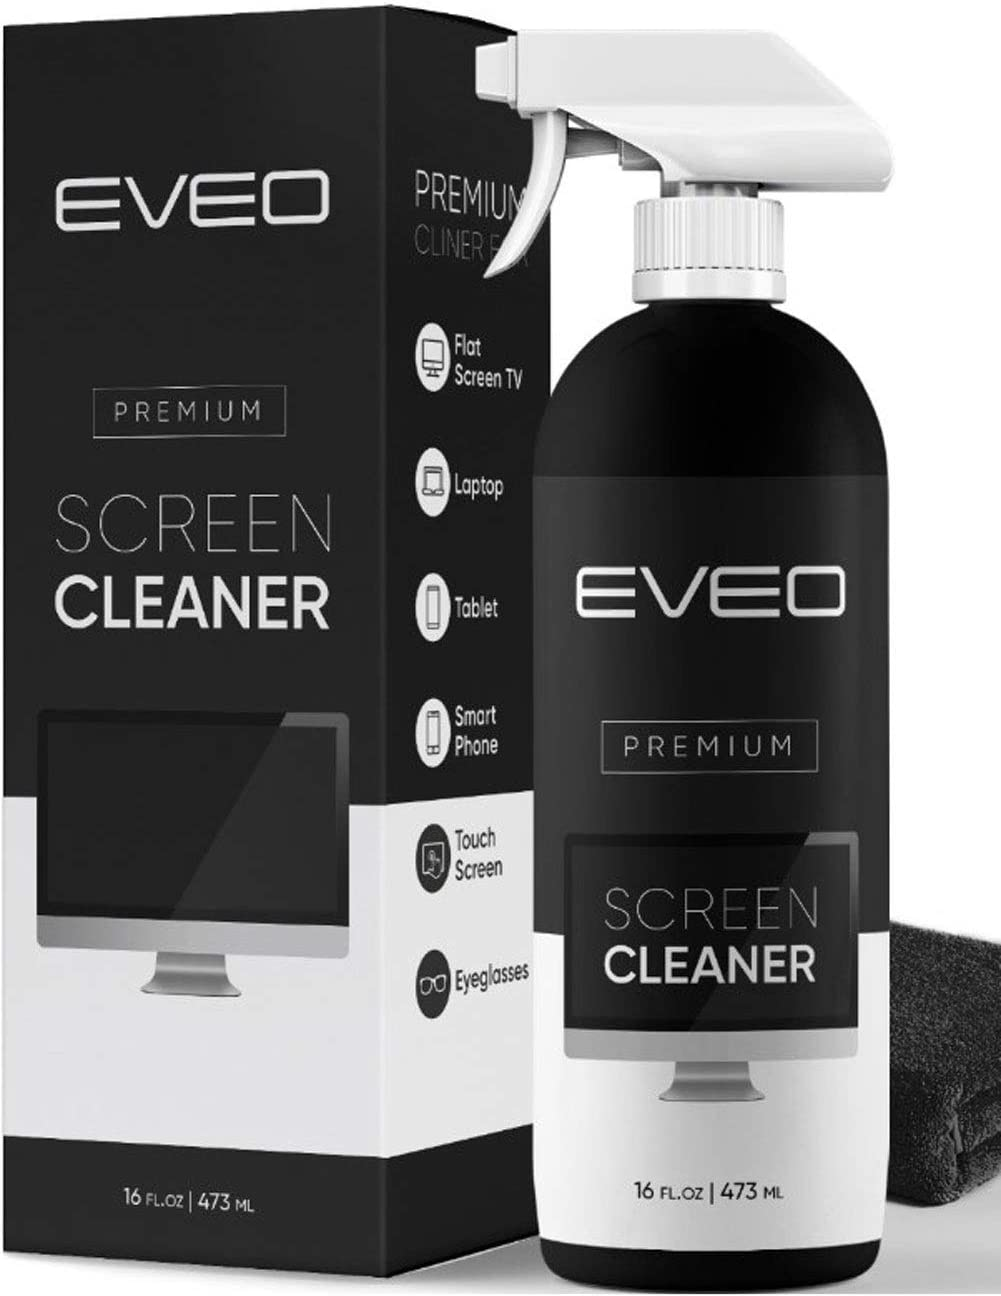 Eveo Screen Cleaner